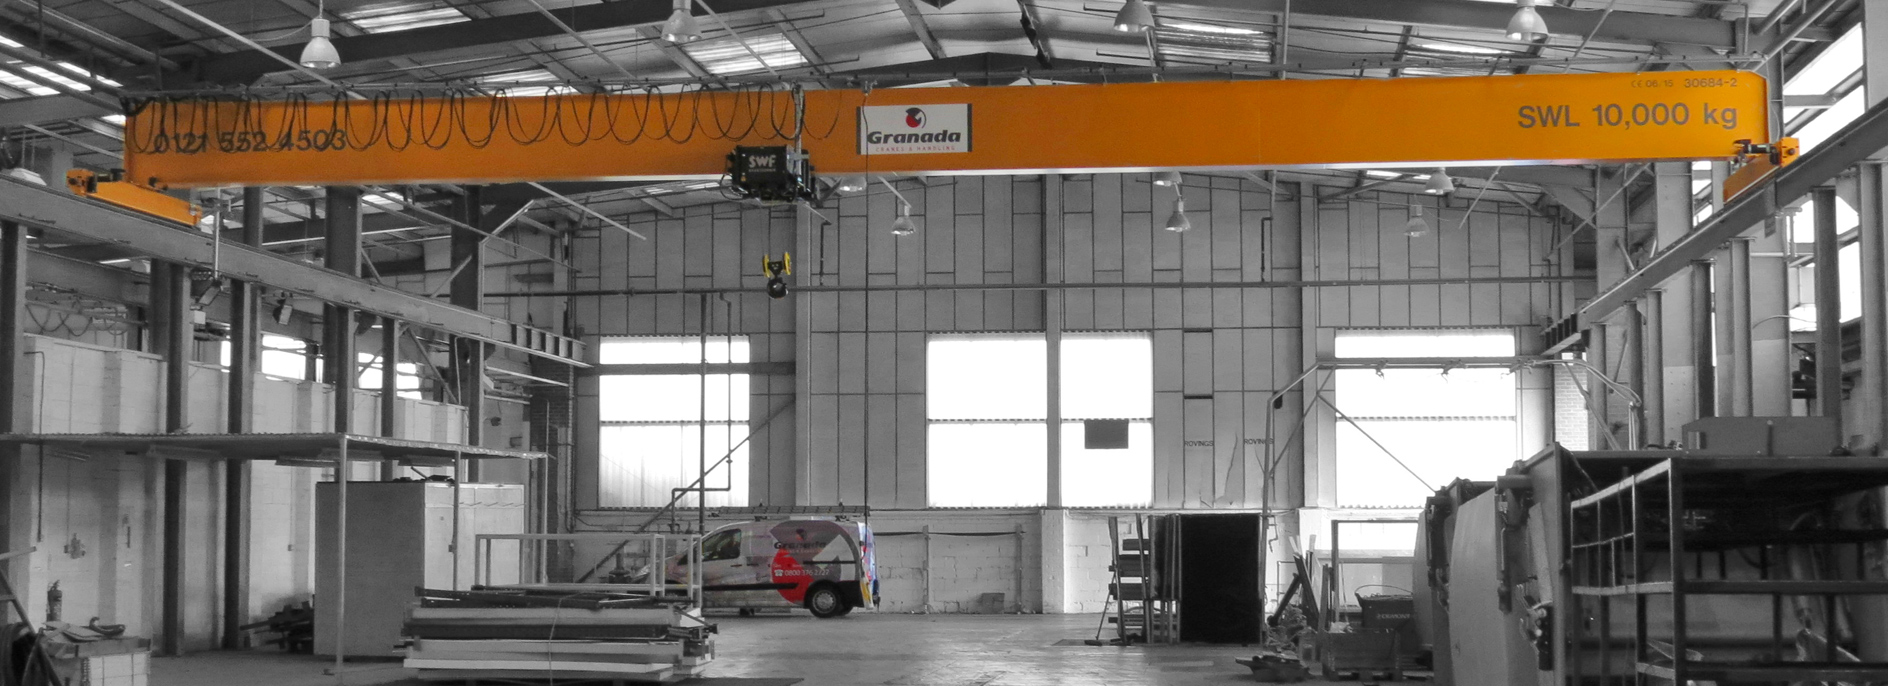 10 tonne overhead crane system installed by by Granada Cranes and Handling